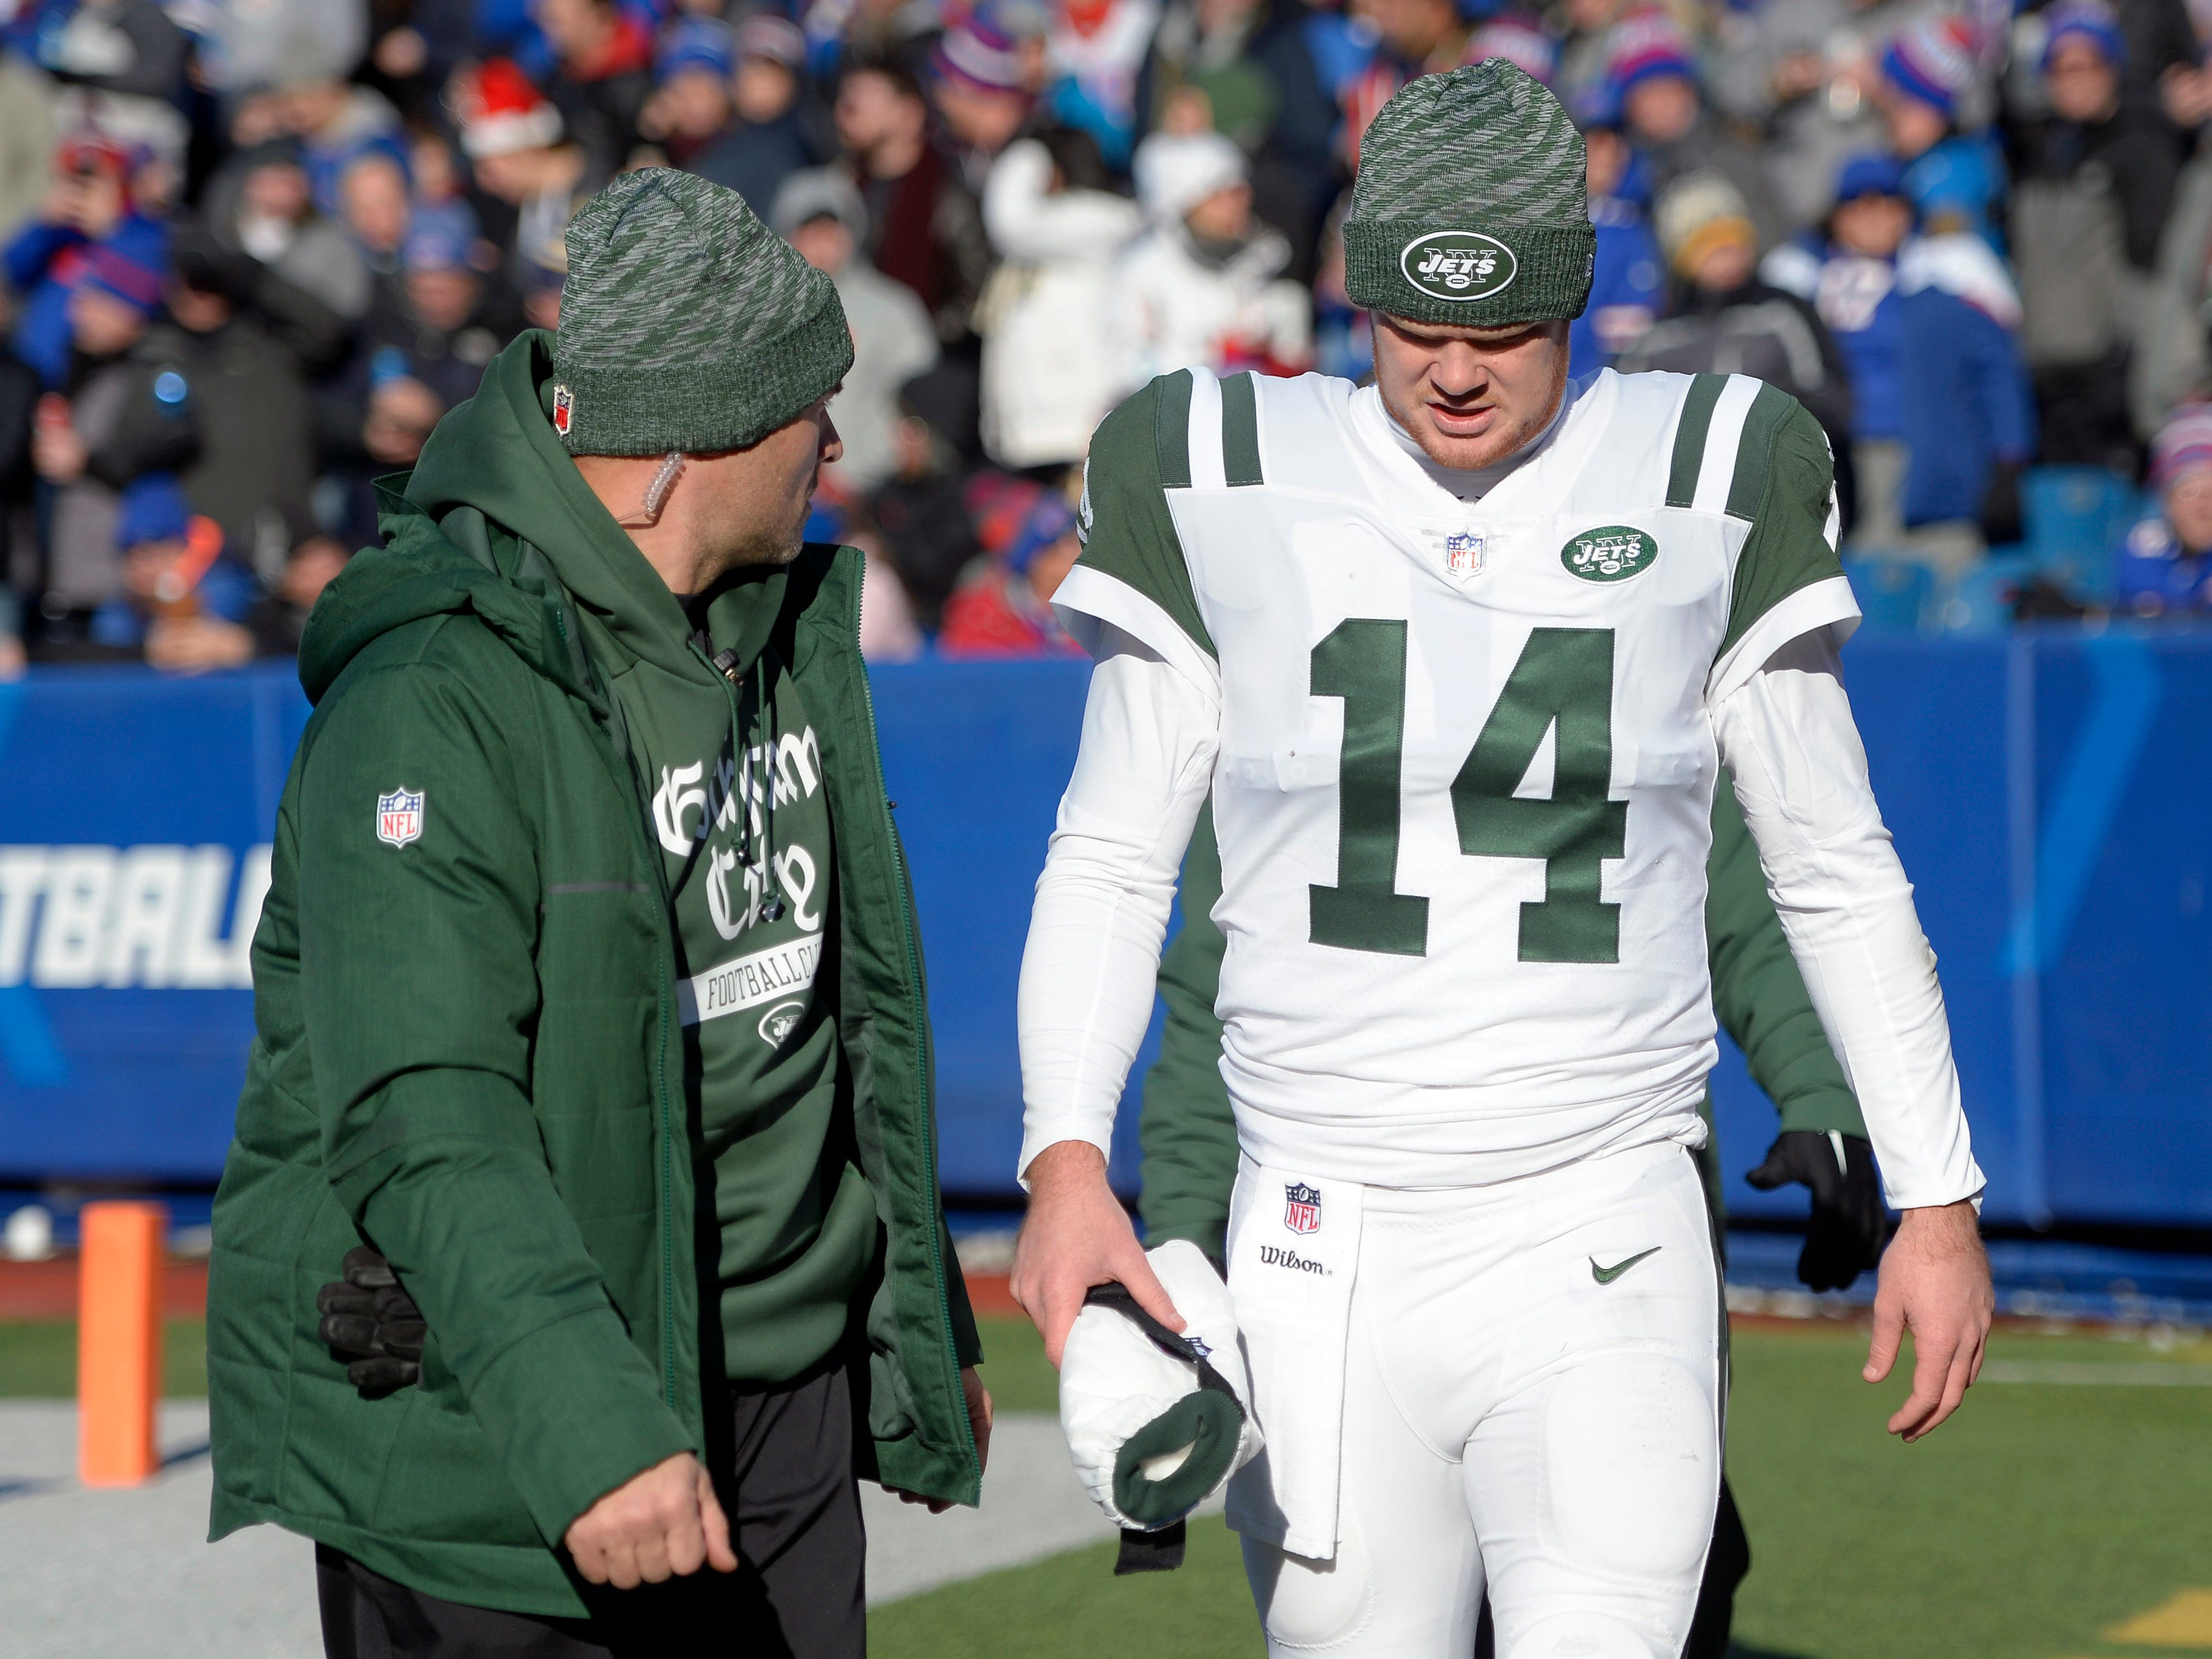 New York Jets quarterback Sam Darnold is escorted toward the tunnel to leave the field during the first half of an NFL football game against the Buffalo Bills, Sunday, Dec. 9, 2018, in Orchard Park, N.Y. (AP Photo/Adrian Kraus)